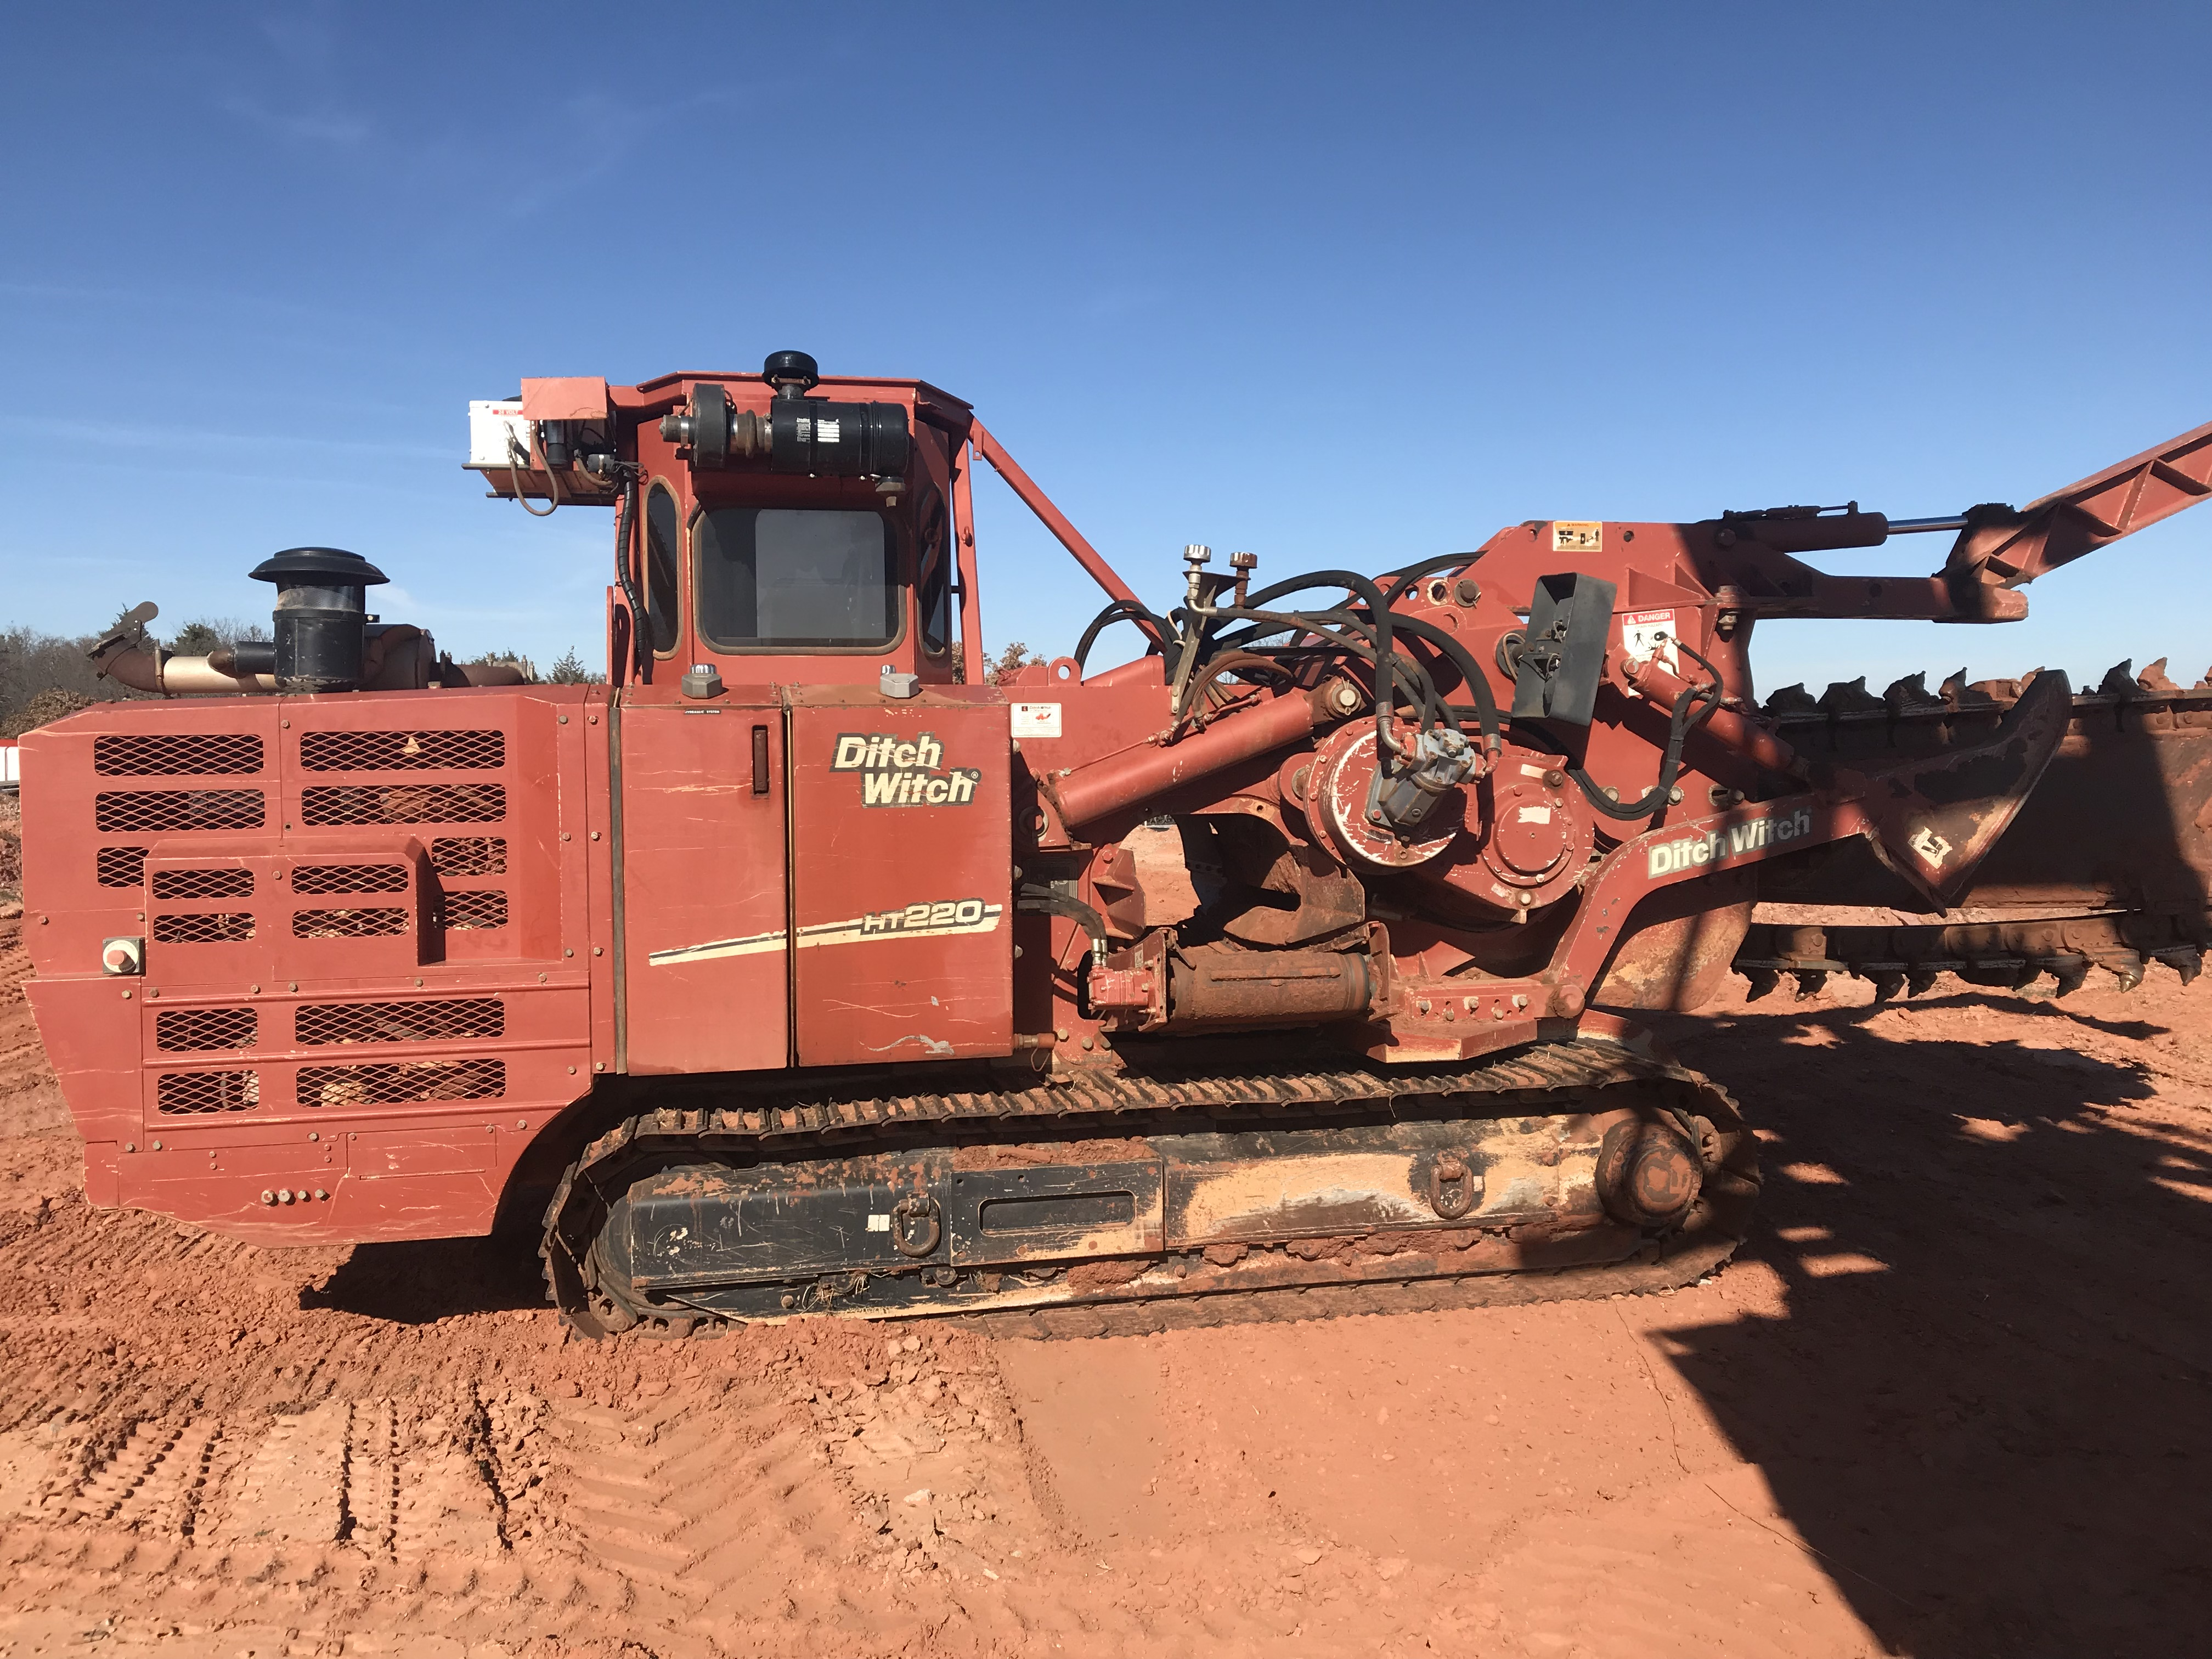 Ditch witch financial services